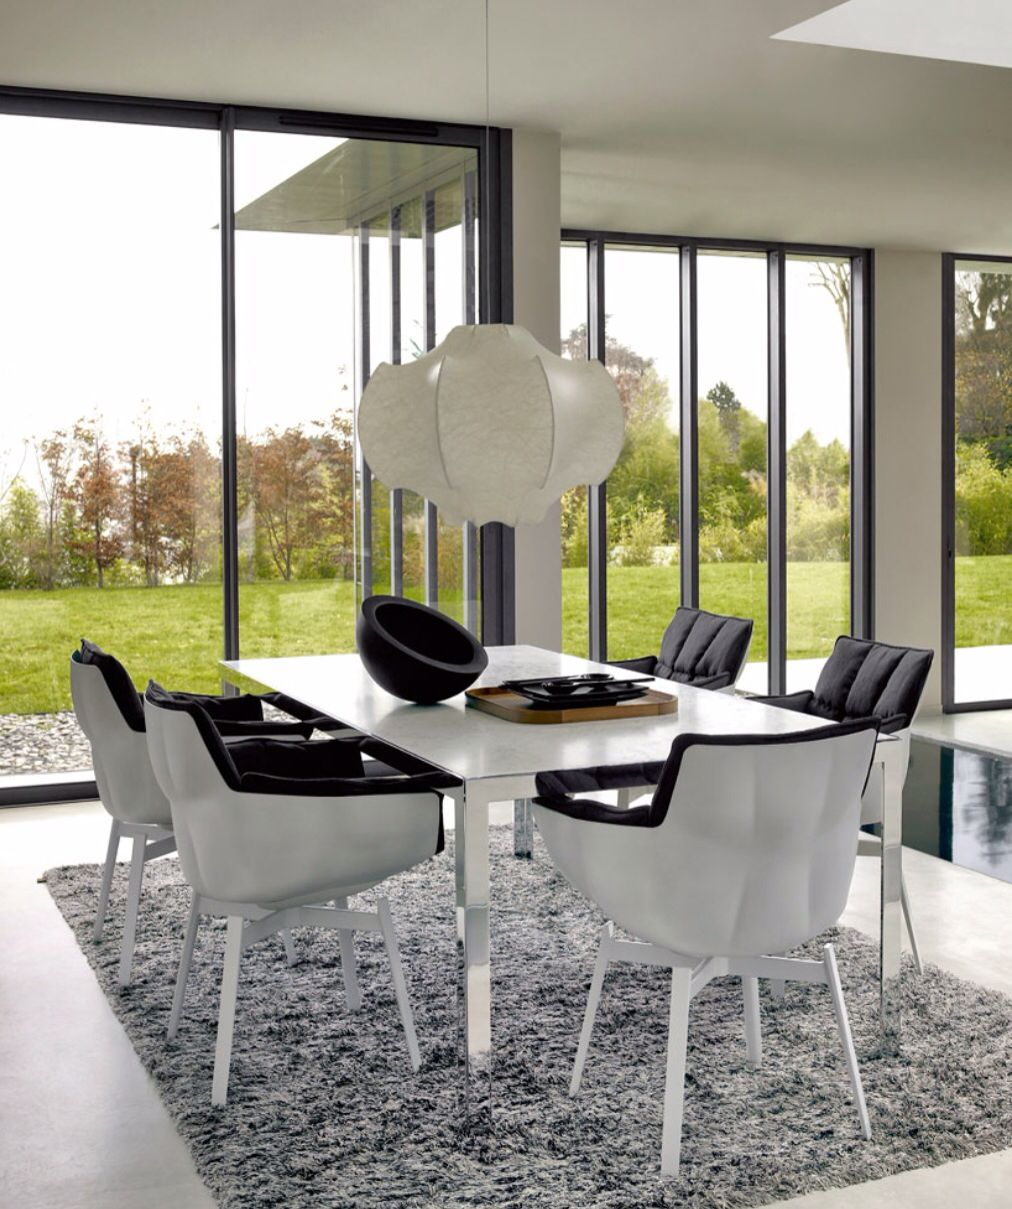 Contemporary Chairs For Dining Room Captivating B&b Italia Dining Room Setsometimes Simple Things Work Bestthe Inspiration